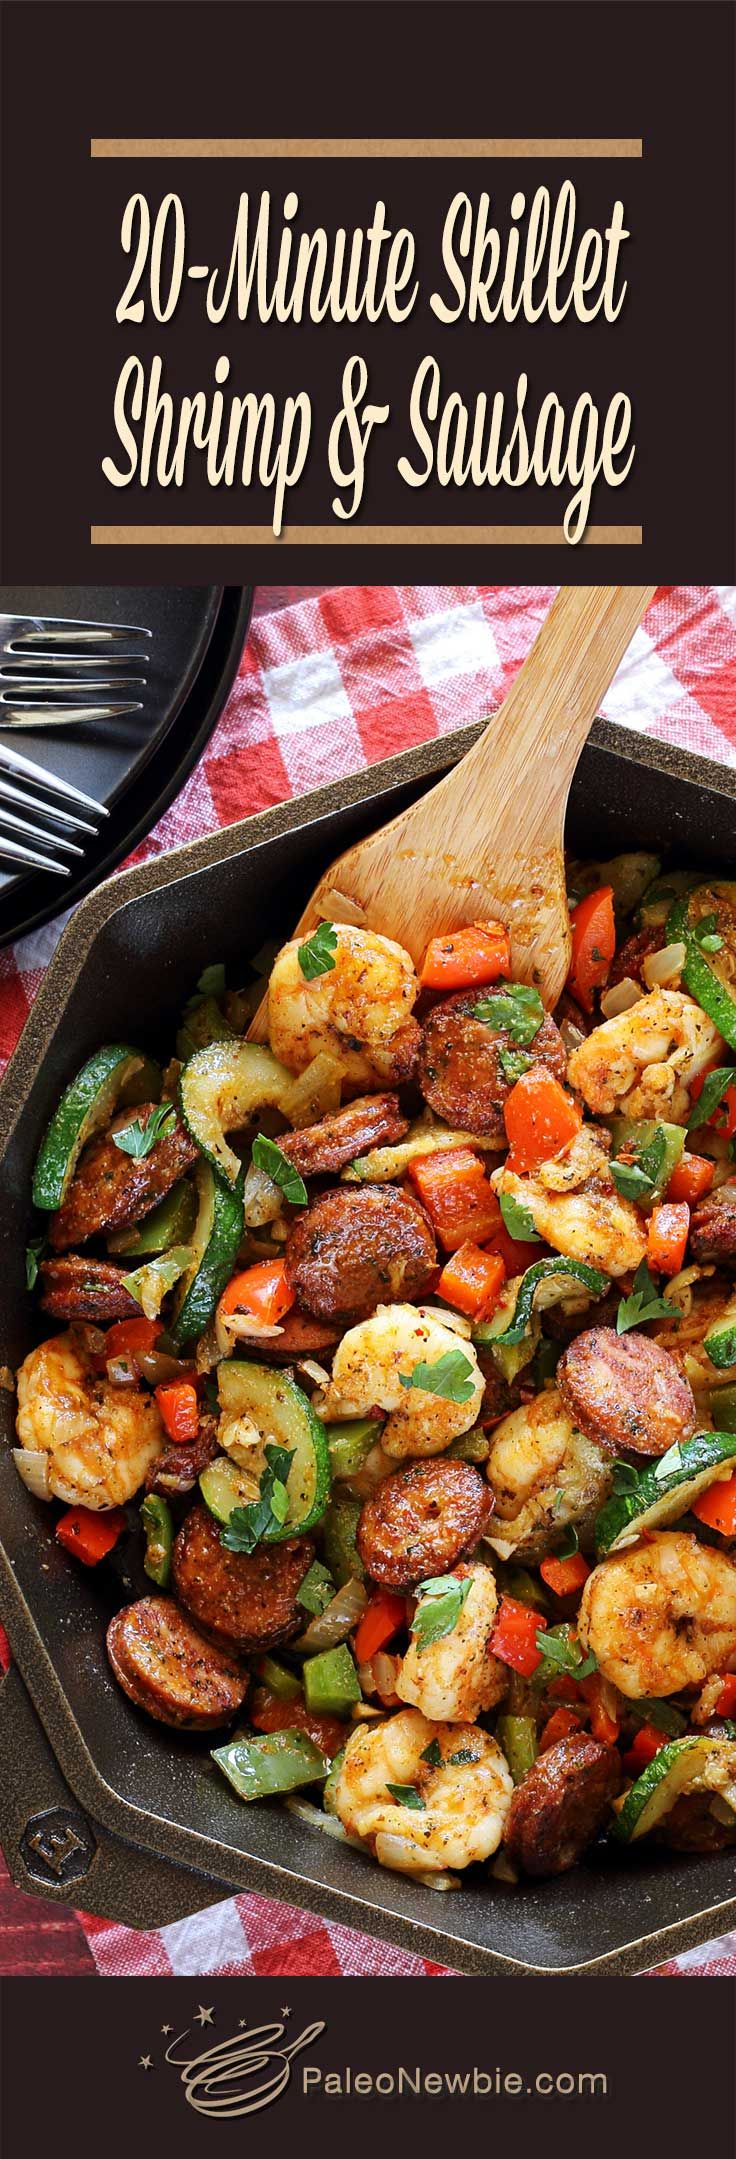 You'll have this Smoked Sausage & Shrimp Paleo Skillet on the table and ready to eat in 20 easy minutes!